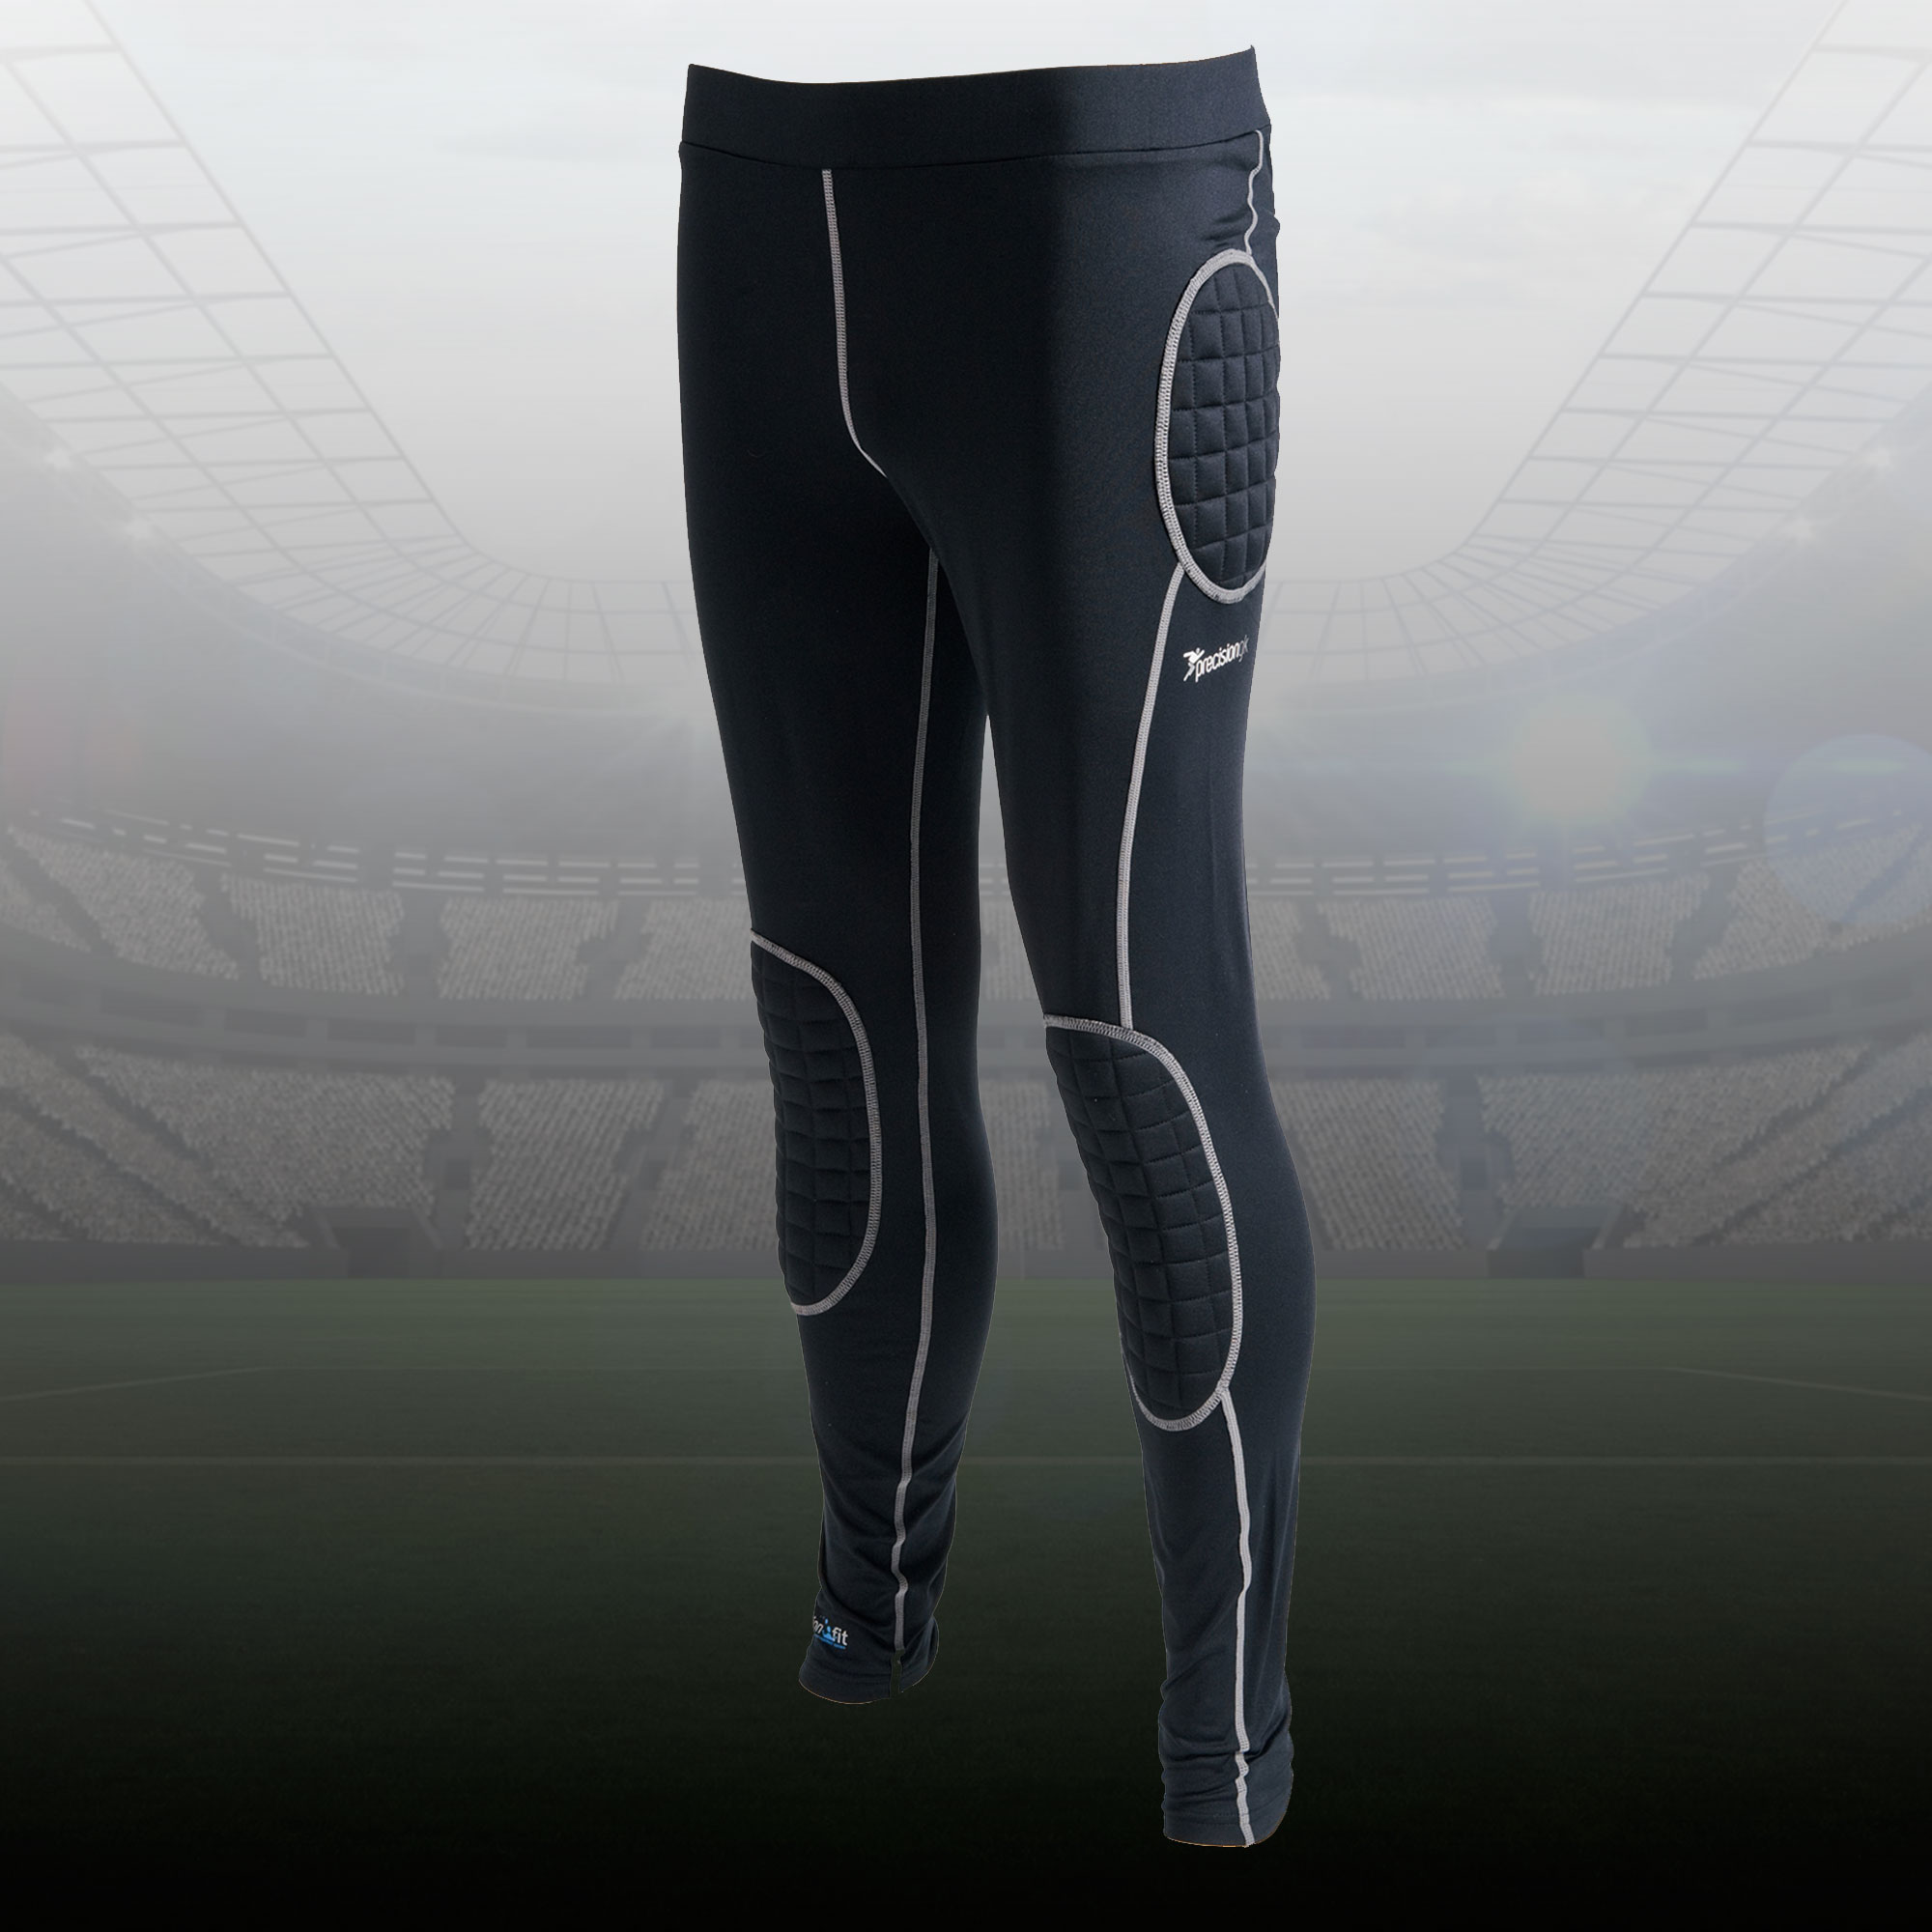 PRECISION GK BASELAYER